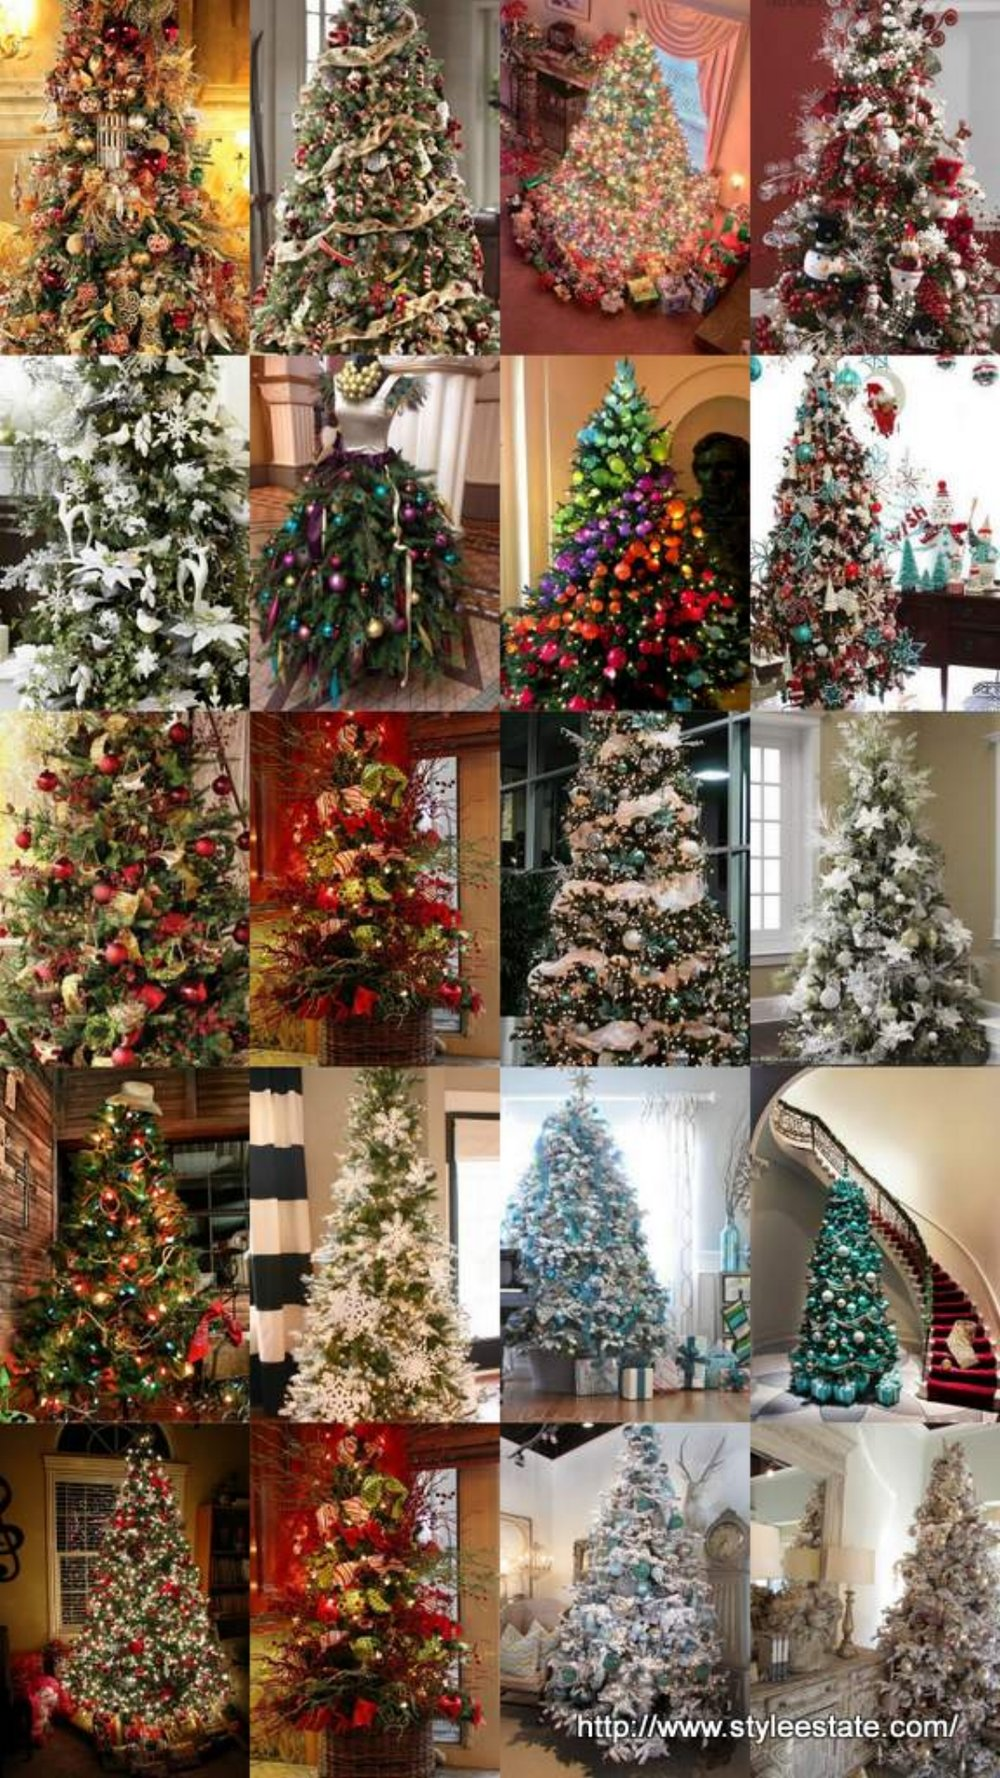 20 awesome christmas tree decorating ideas inspirations style - Awesome Christmas Trees